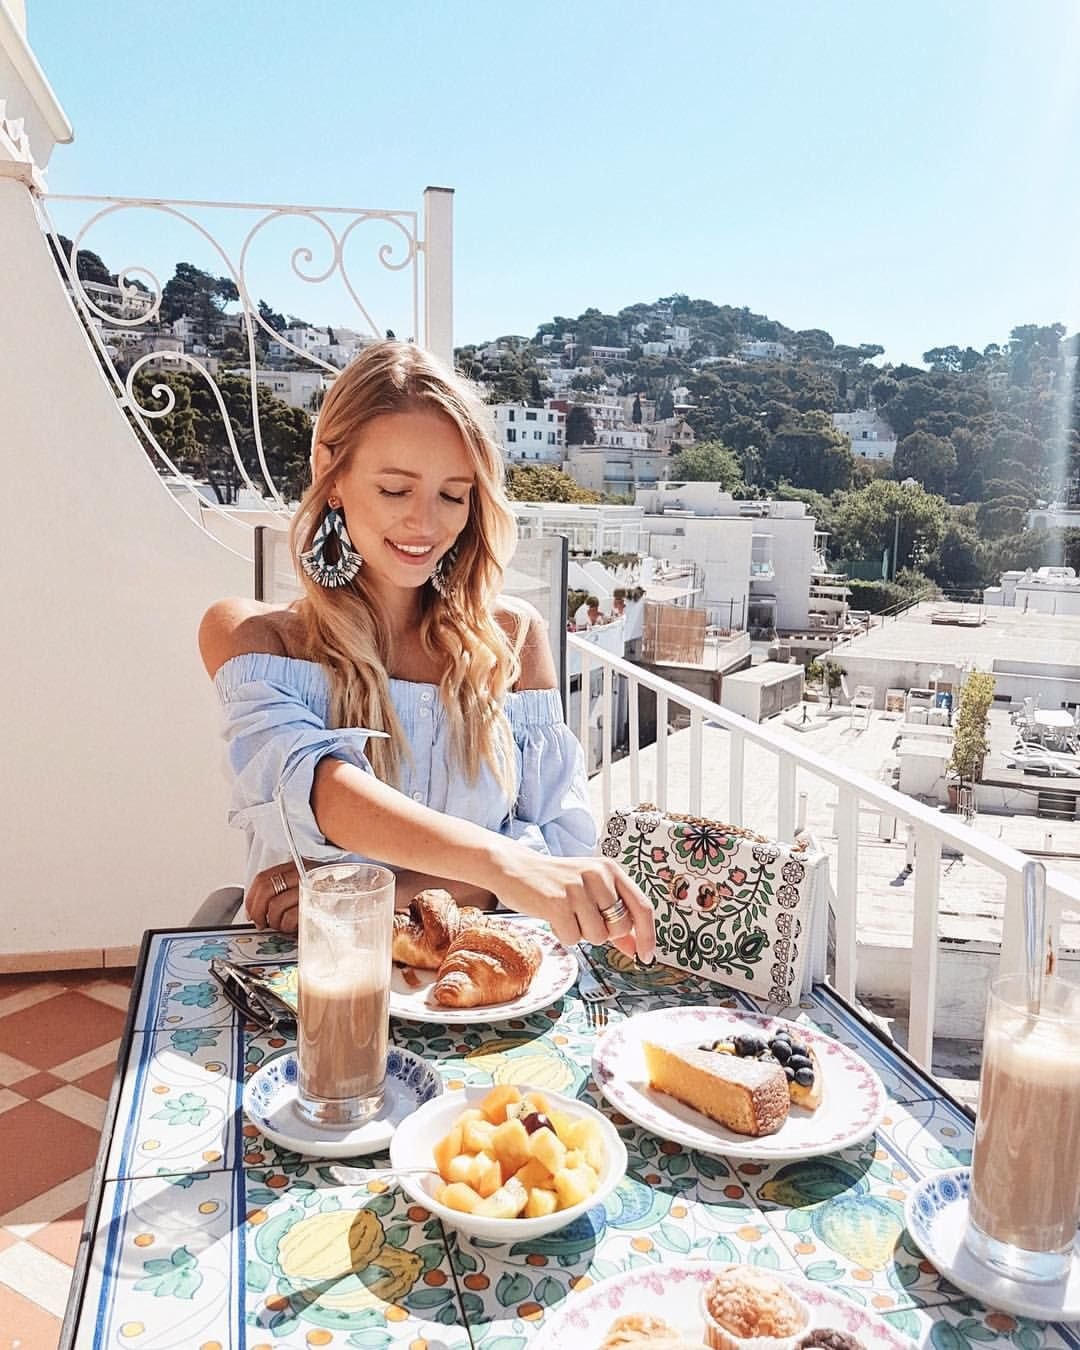 """50.3k Likes, 643 Comments - Leonie Hanne (@ohhcouture) on Instagram: """"Always craving what's on my boyfriend's plate @alex.galievsky. 👼🍦☕️ #Capri #Italy #ToryBurch"""""""